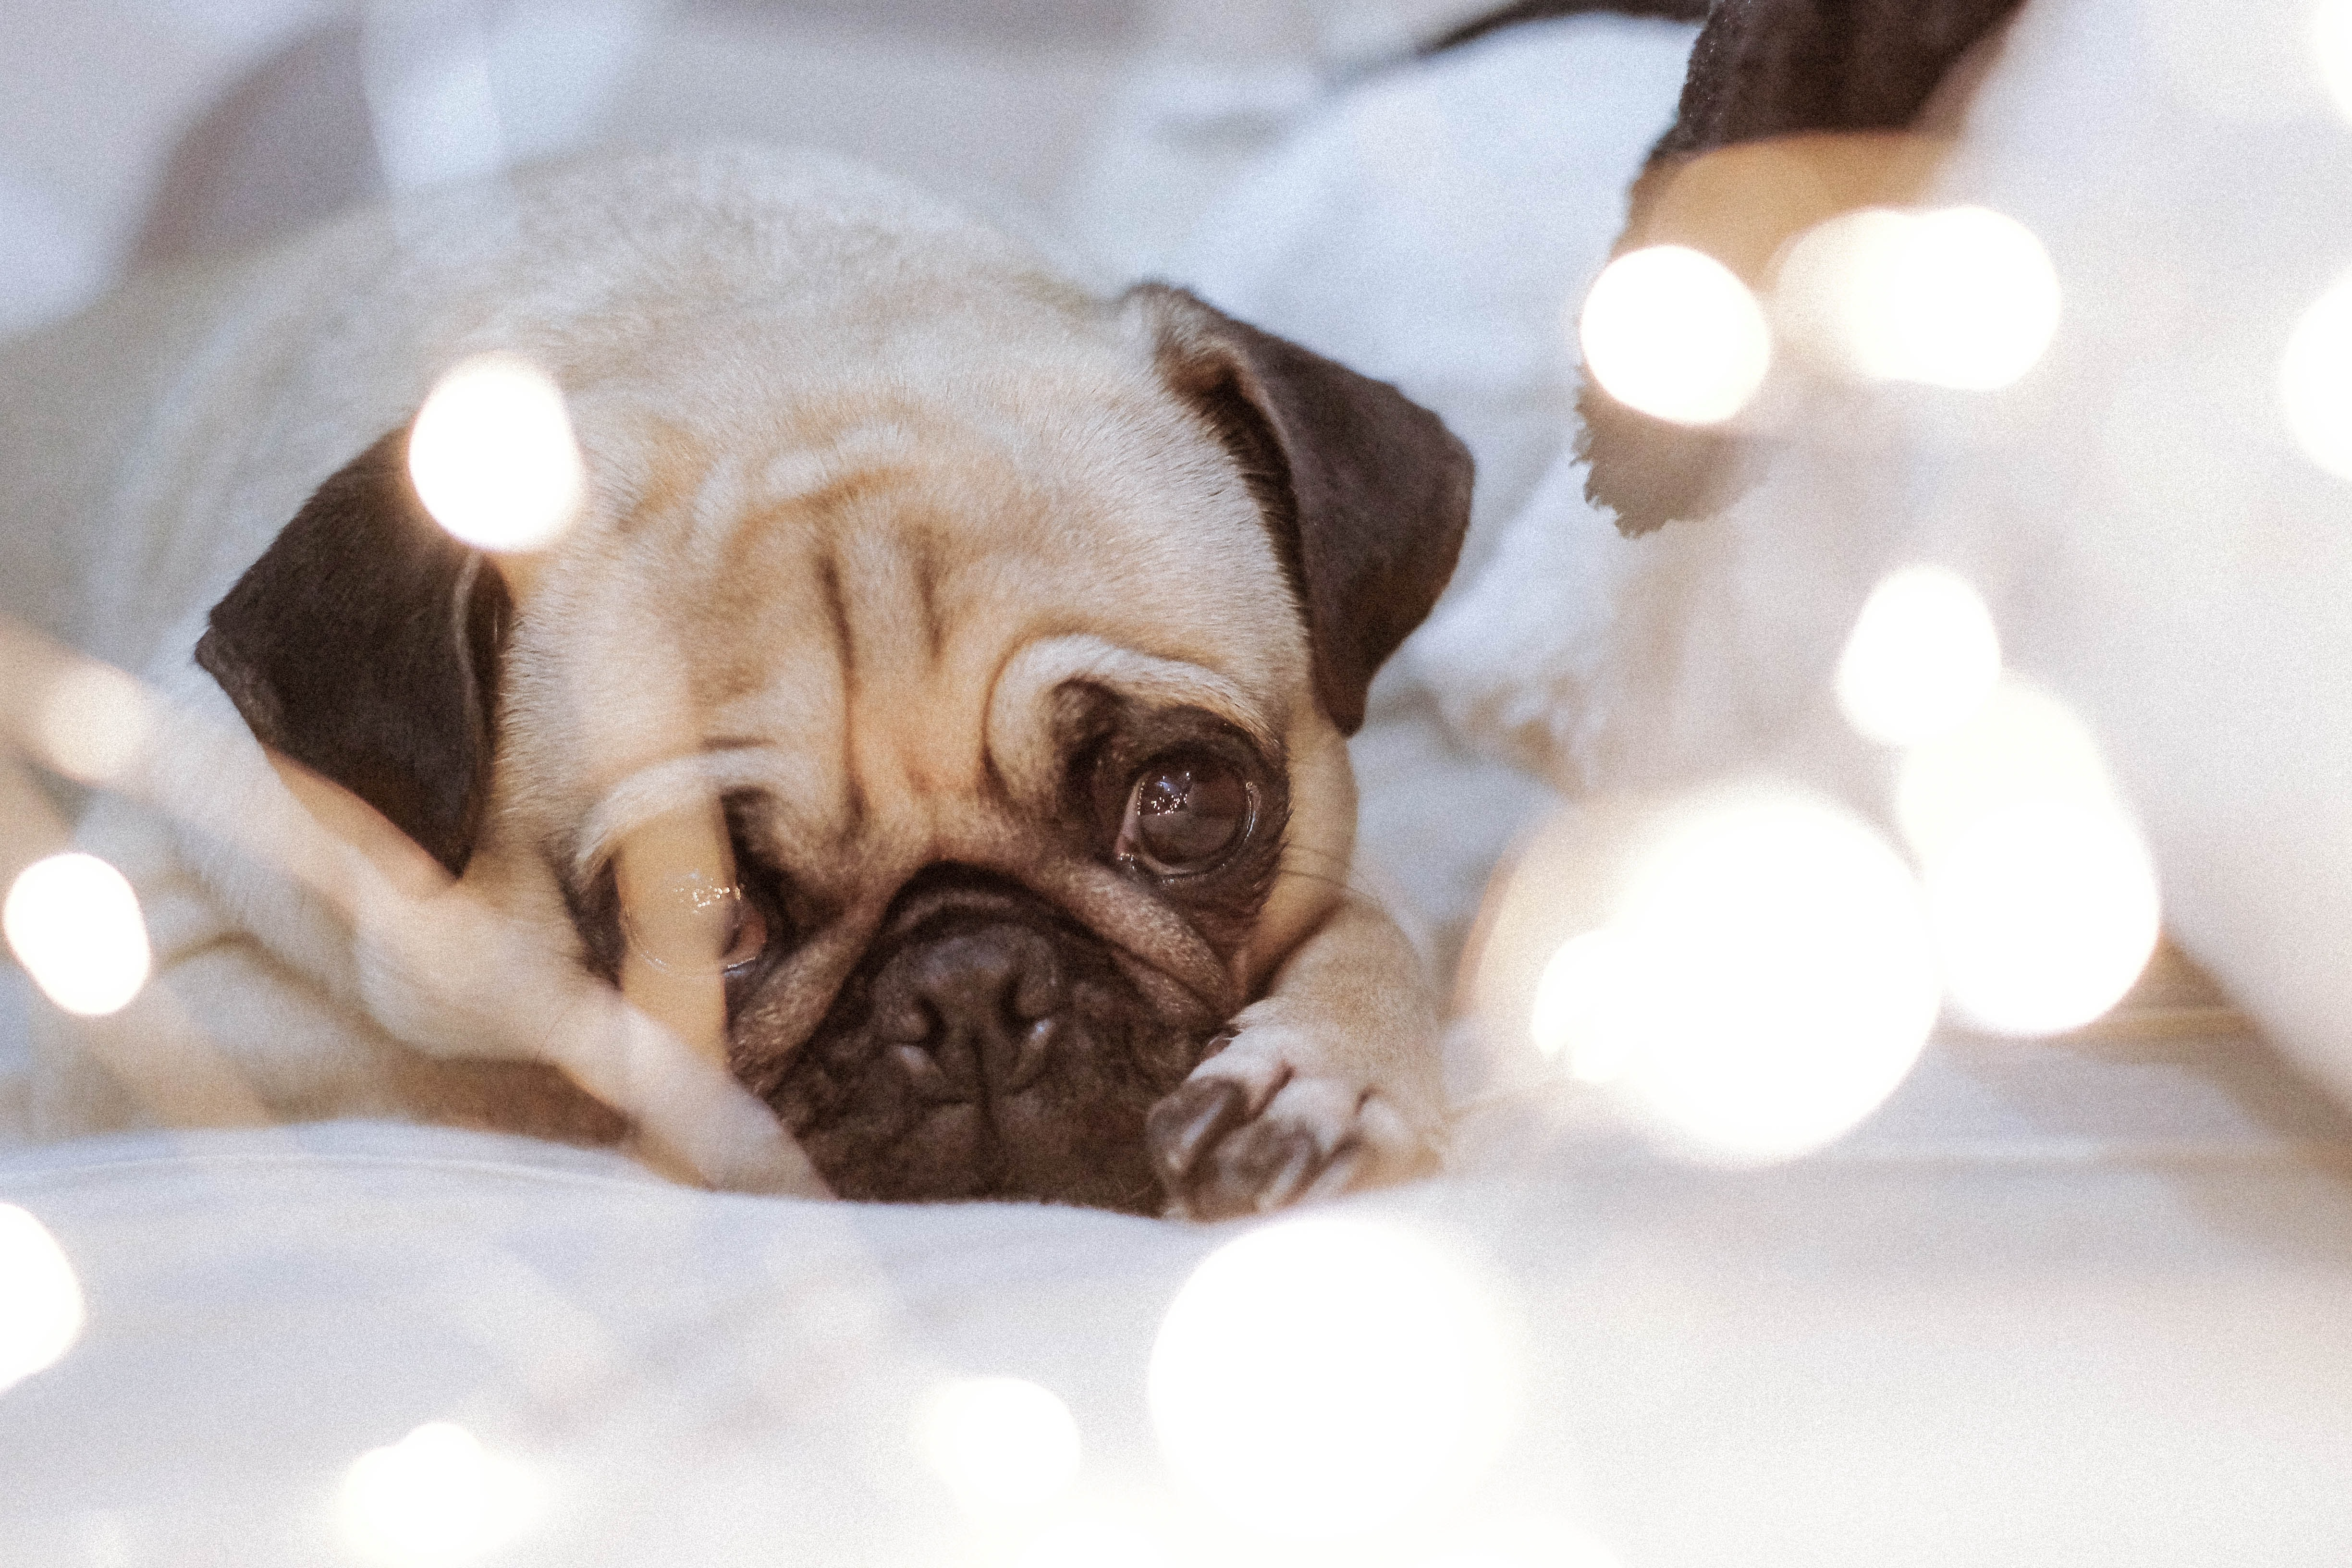 fawn pug lying on white surface